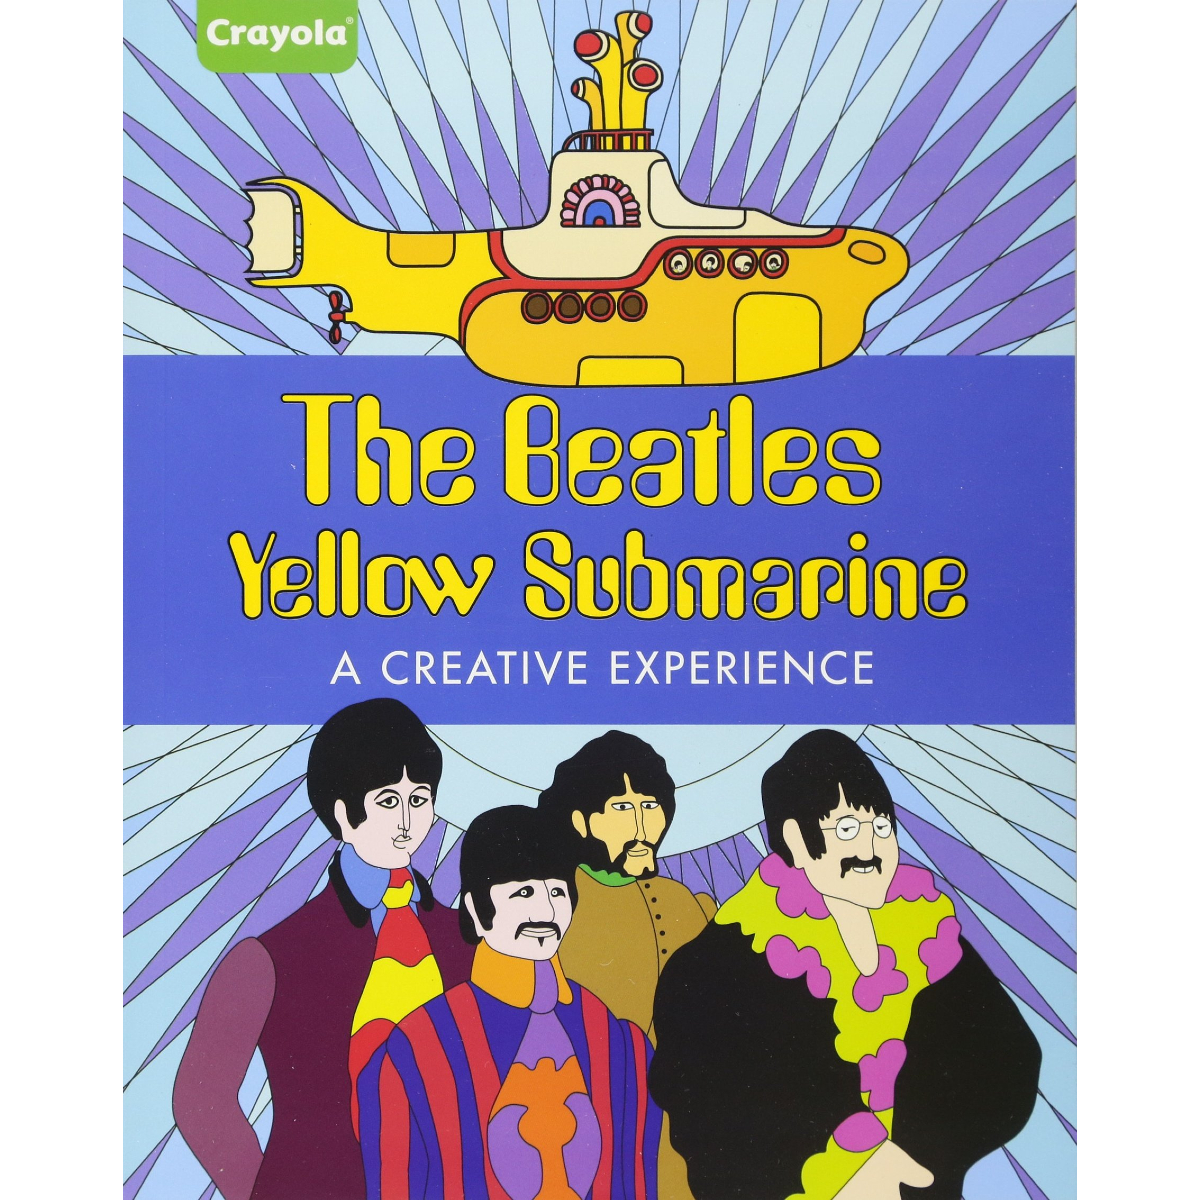 The Beatles: Yellow Submarine A Creative Experience